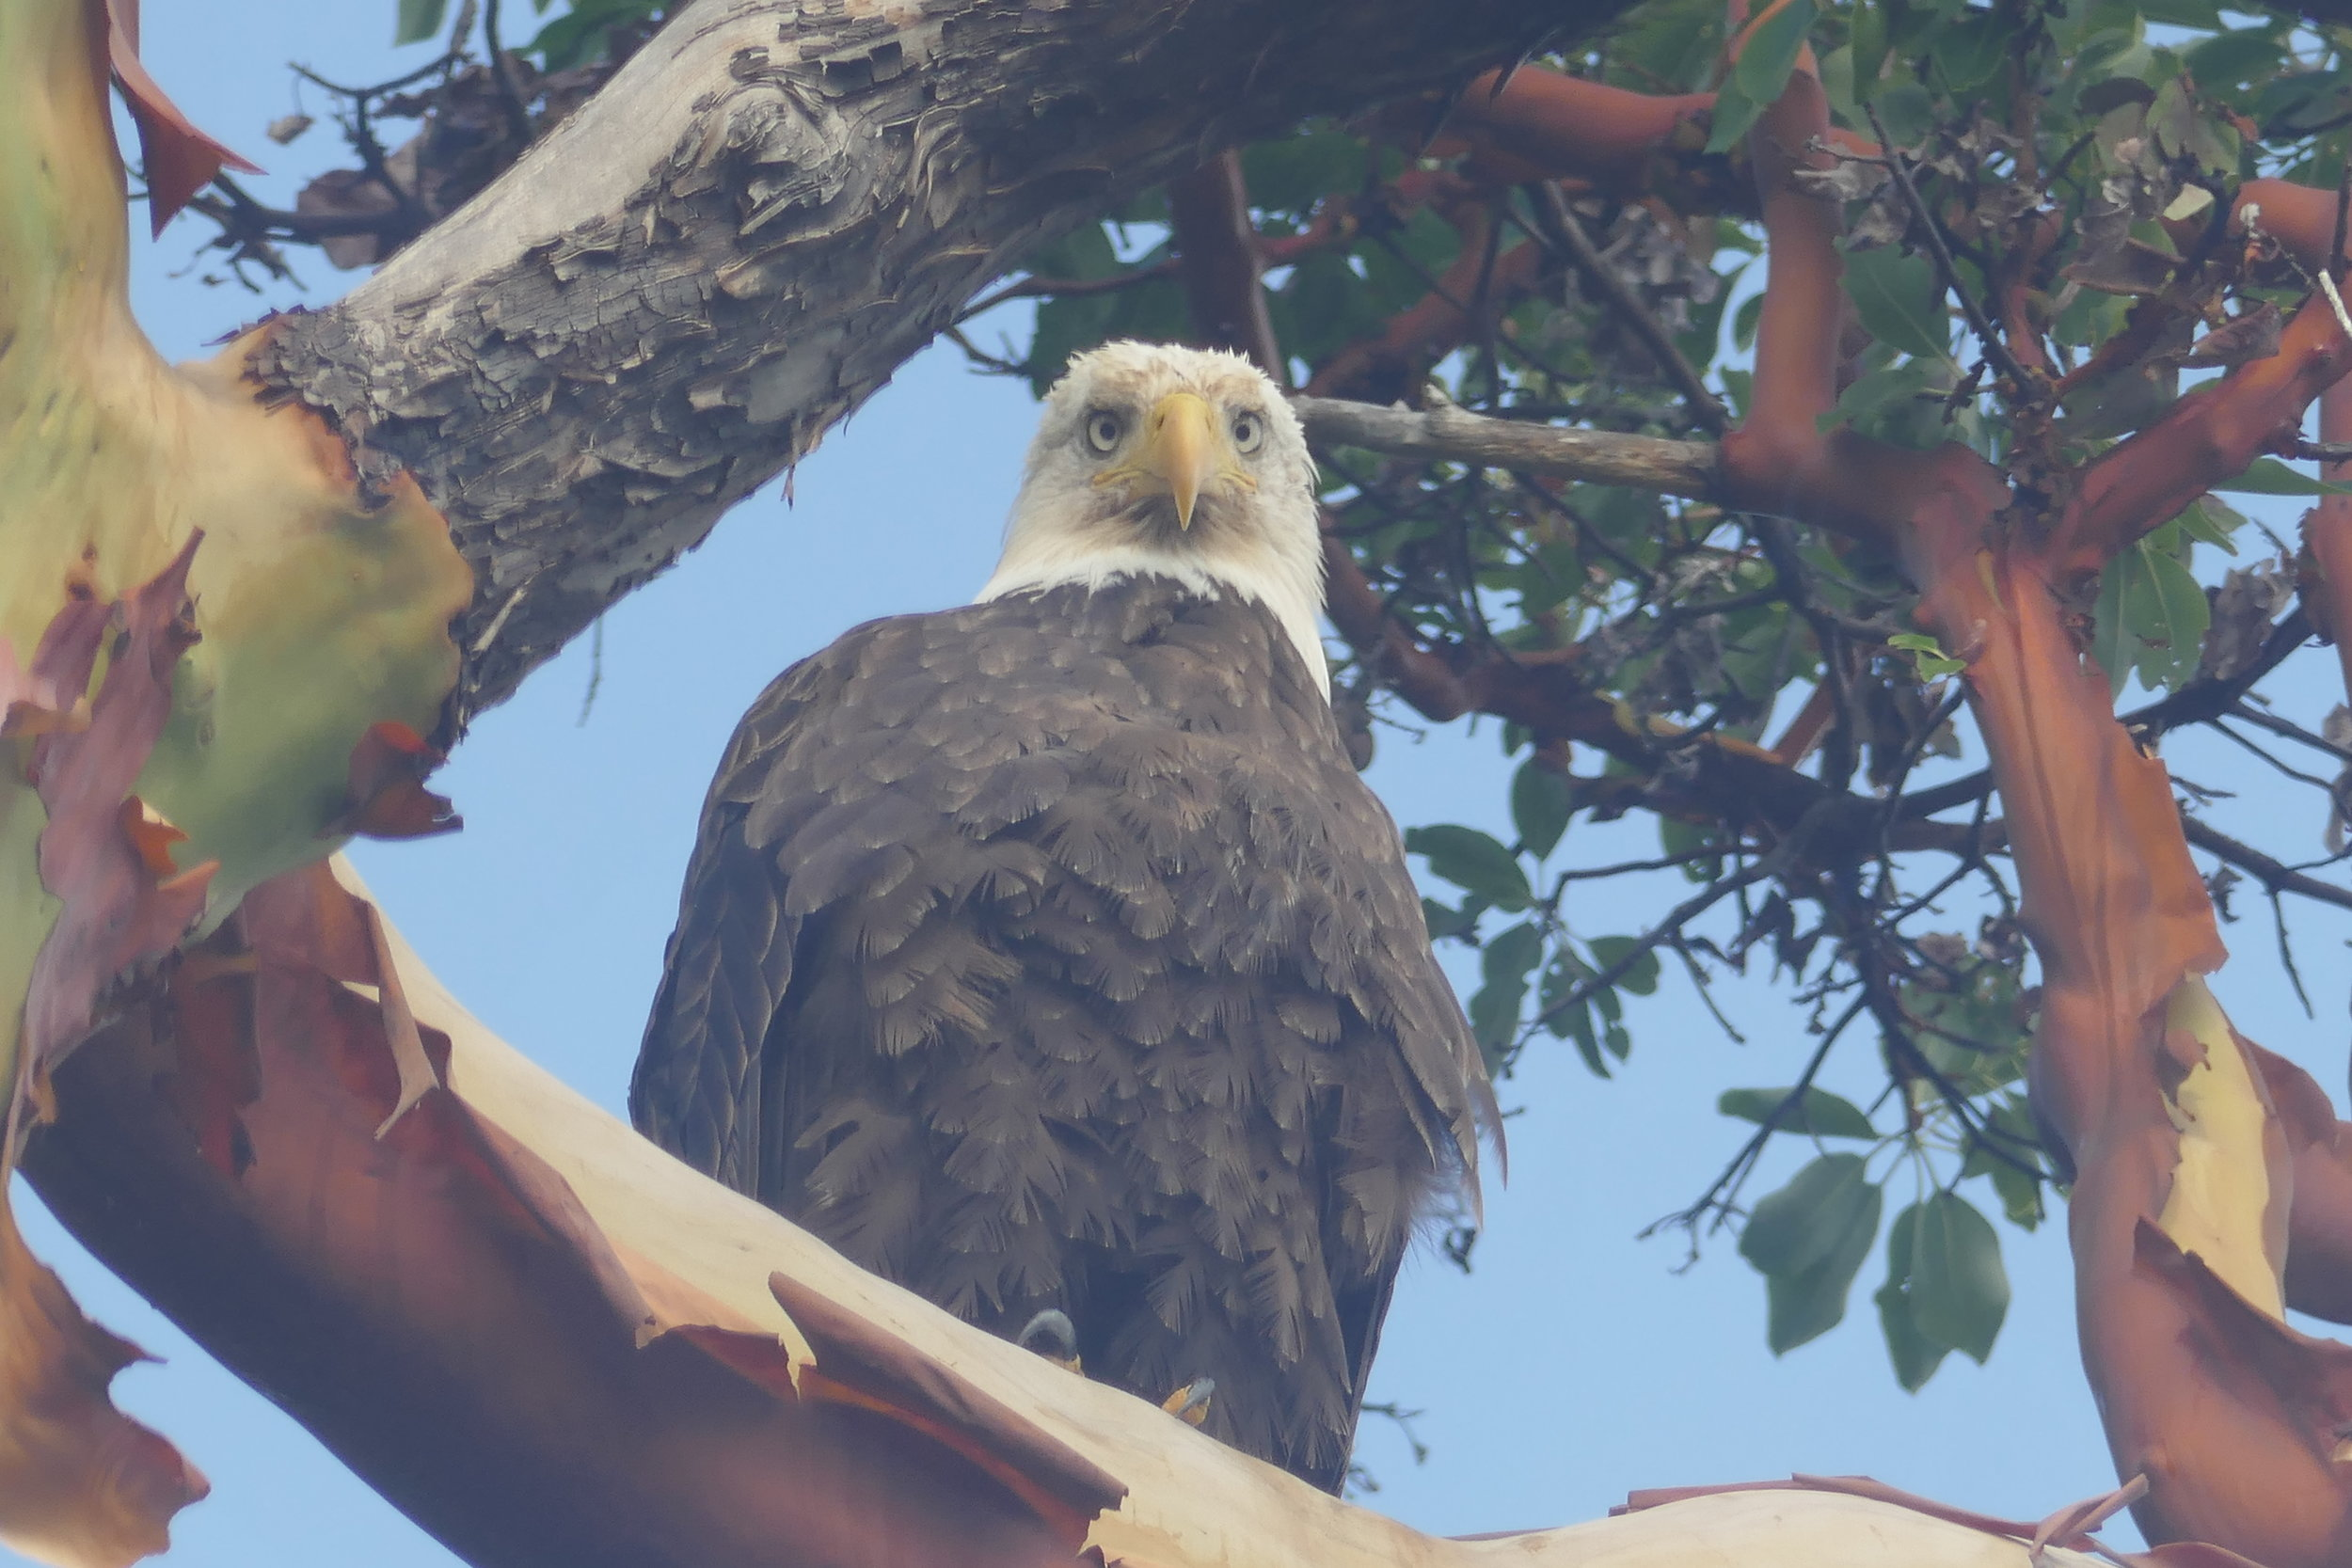 Bald Eagle, Sharpes Bay, British Columbia, Canada.   The watchful eyes of the eagle see the threats of climate change.